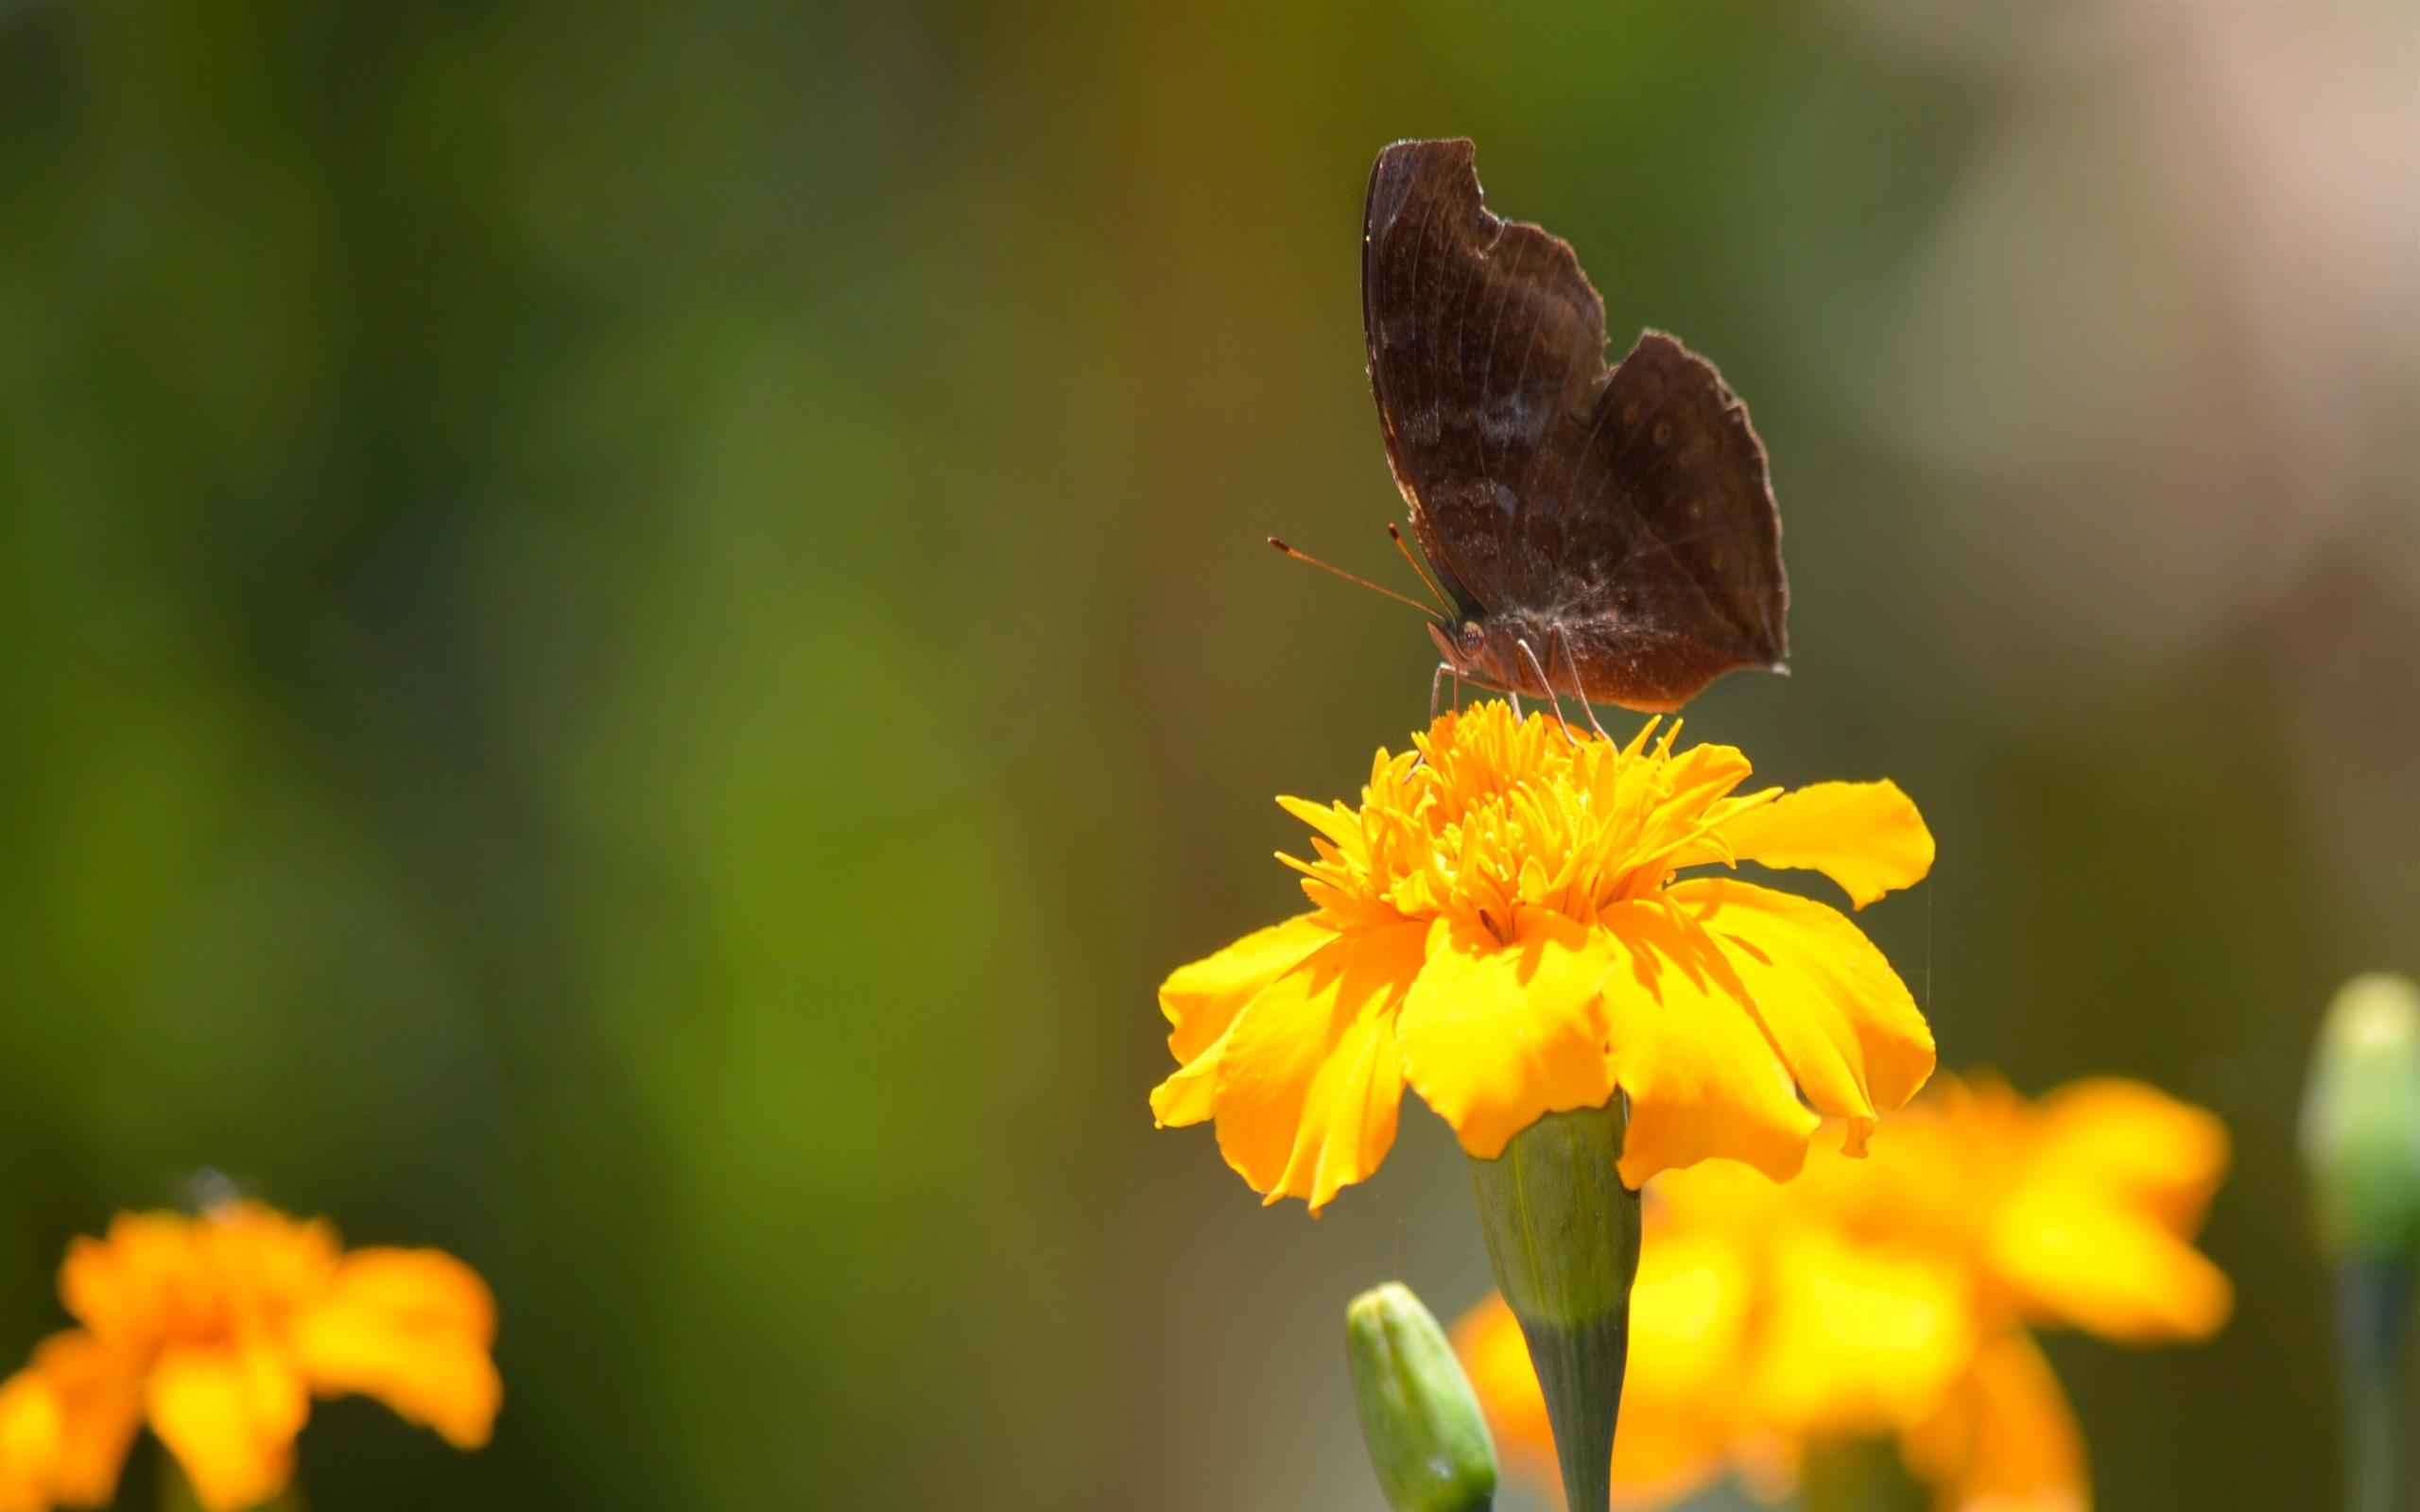 2560x1600 Butterfly on Yellow Flower 4K Wallpaper